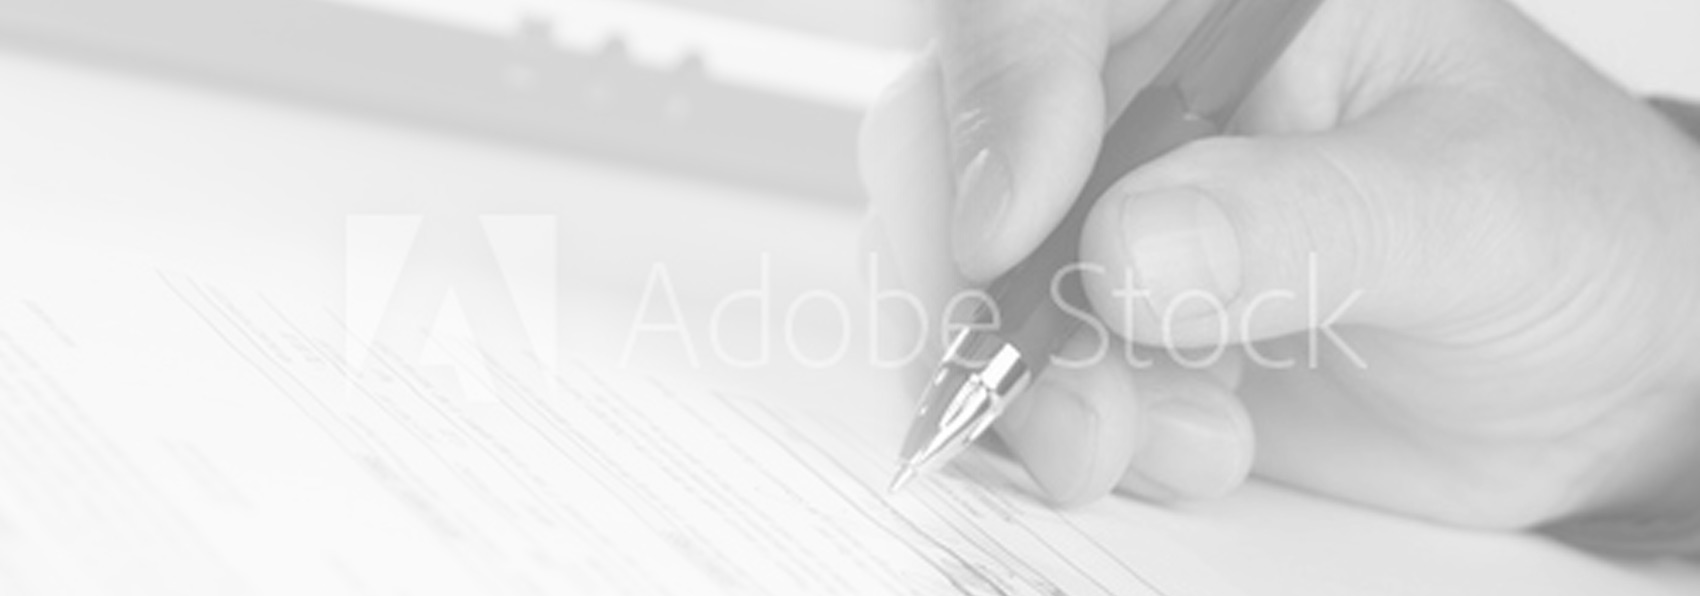 Adobe Stock photo of hand with pen